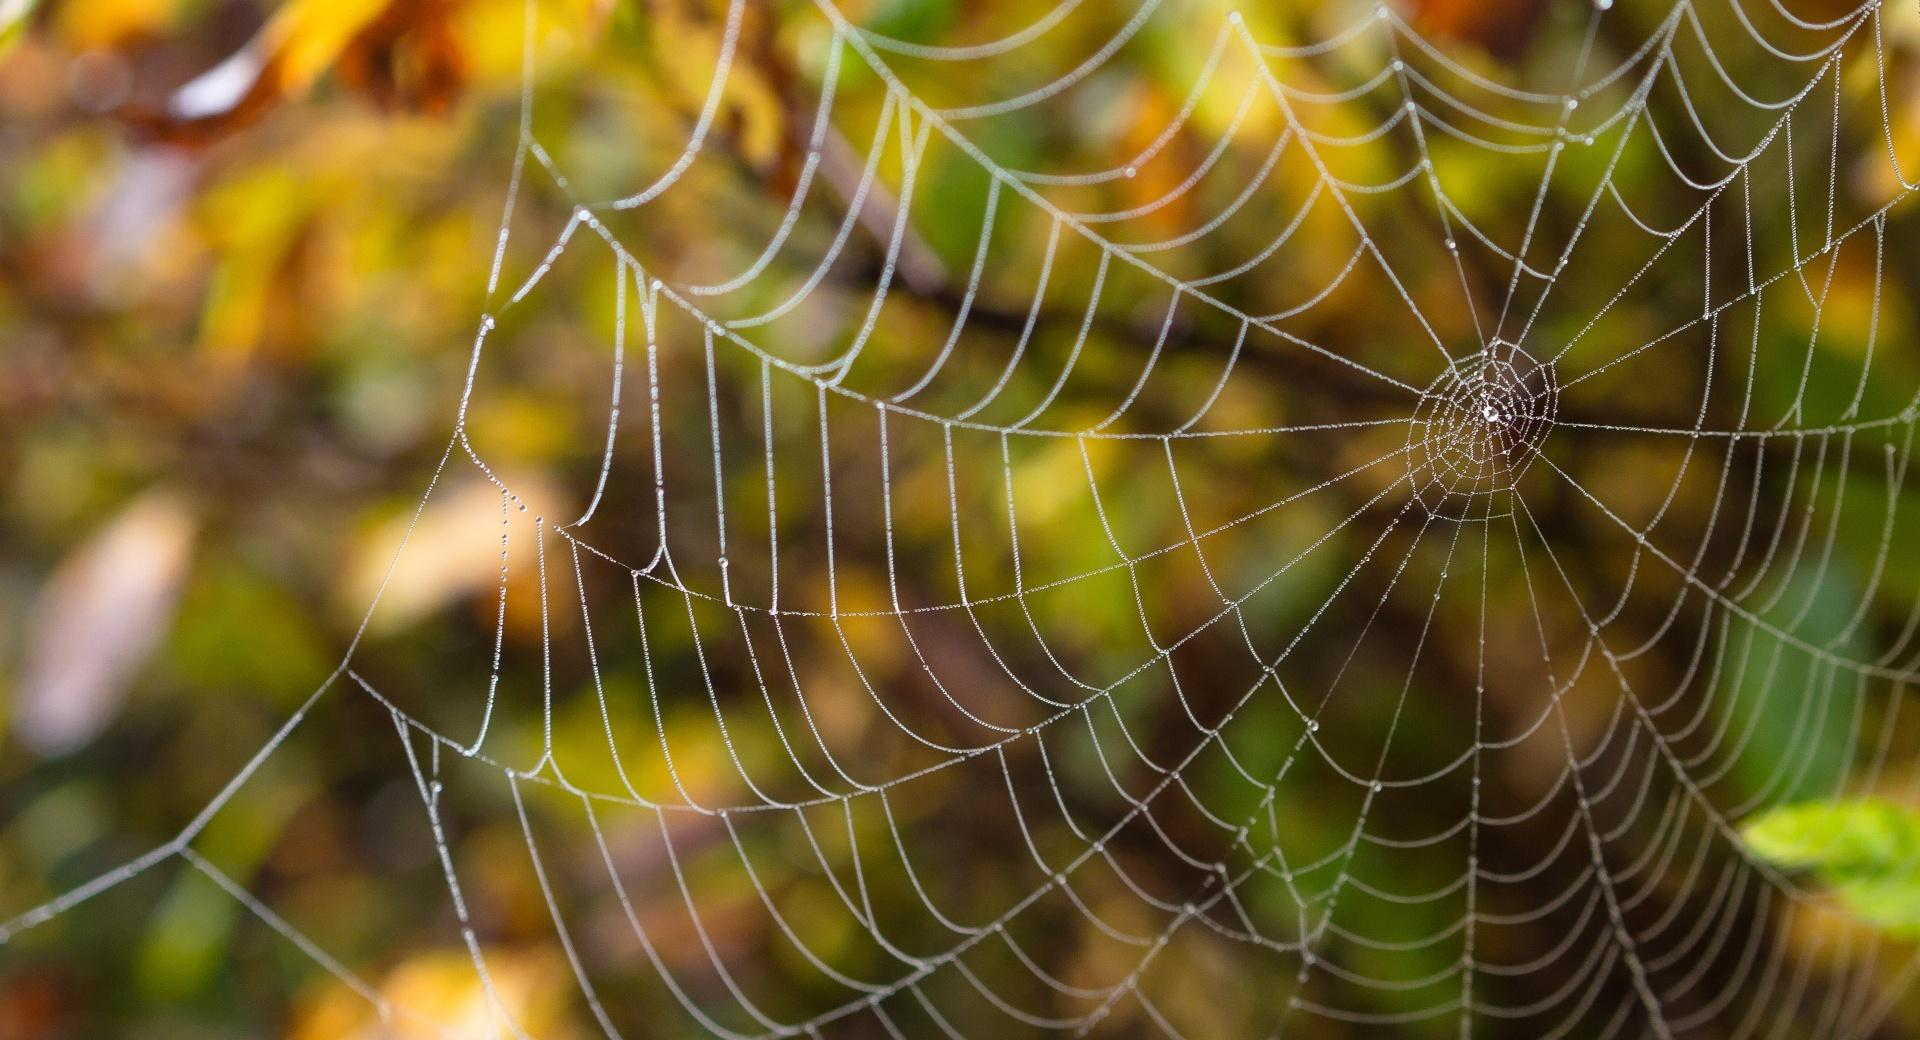 Delicate Spider Web wallpapers HD quality